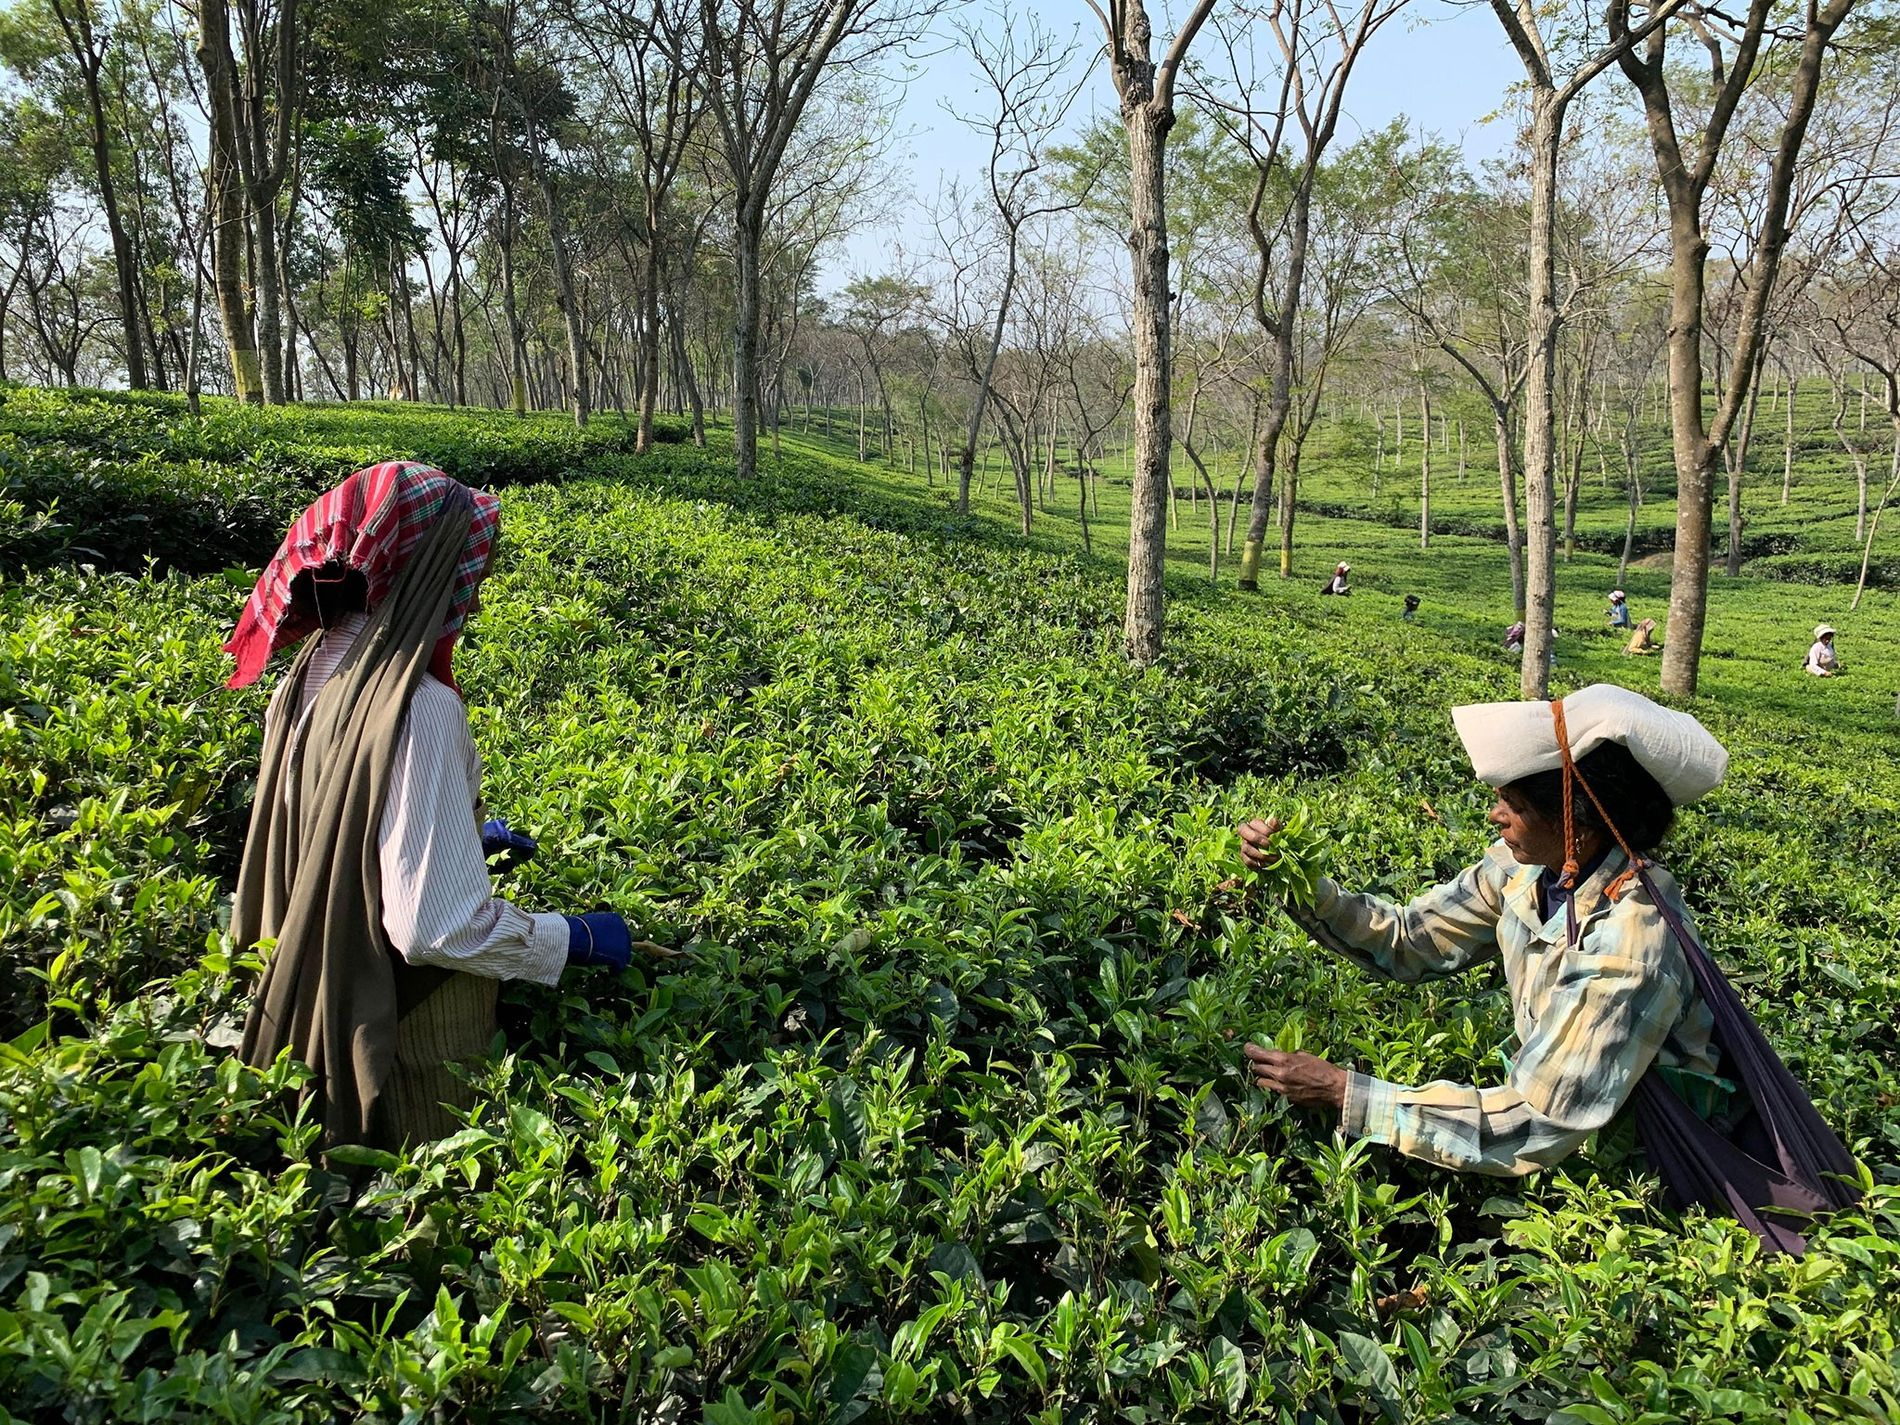 On tea plantations in West Bengal, women tea pickers are often preferred because of their reliability and care when selecting leaves.